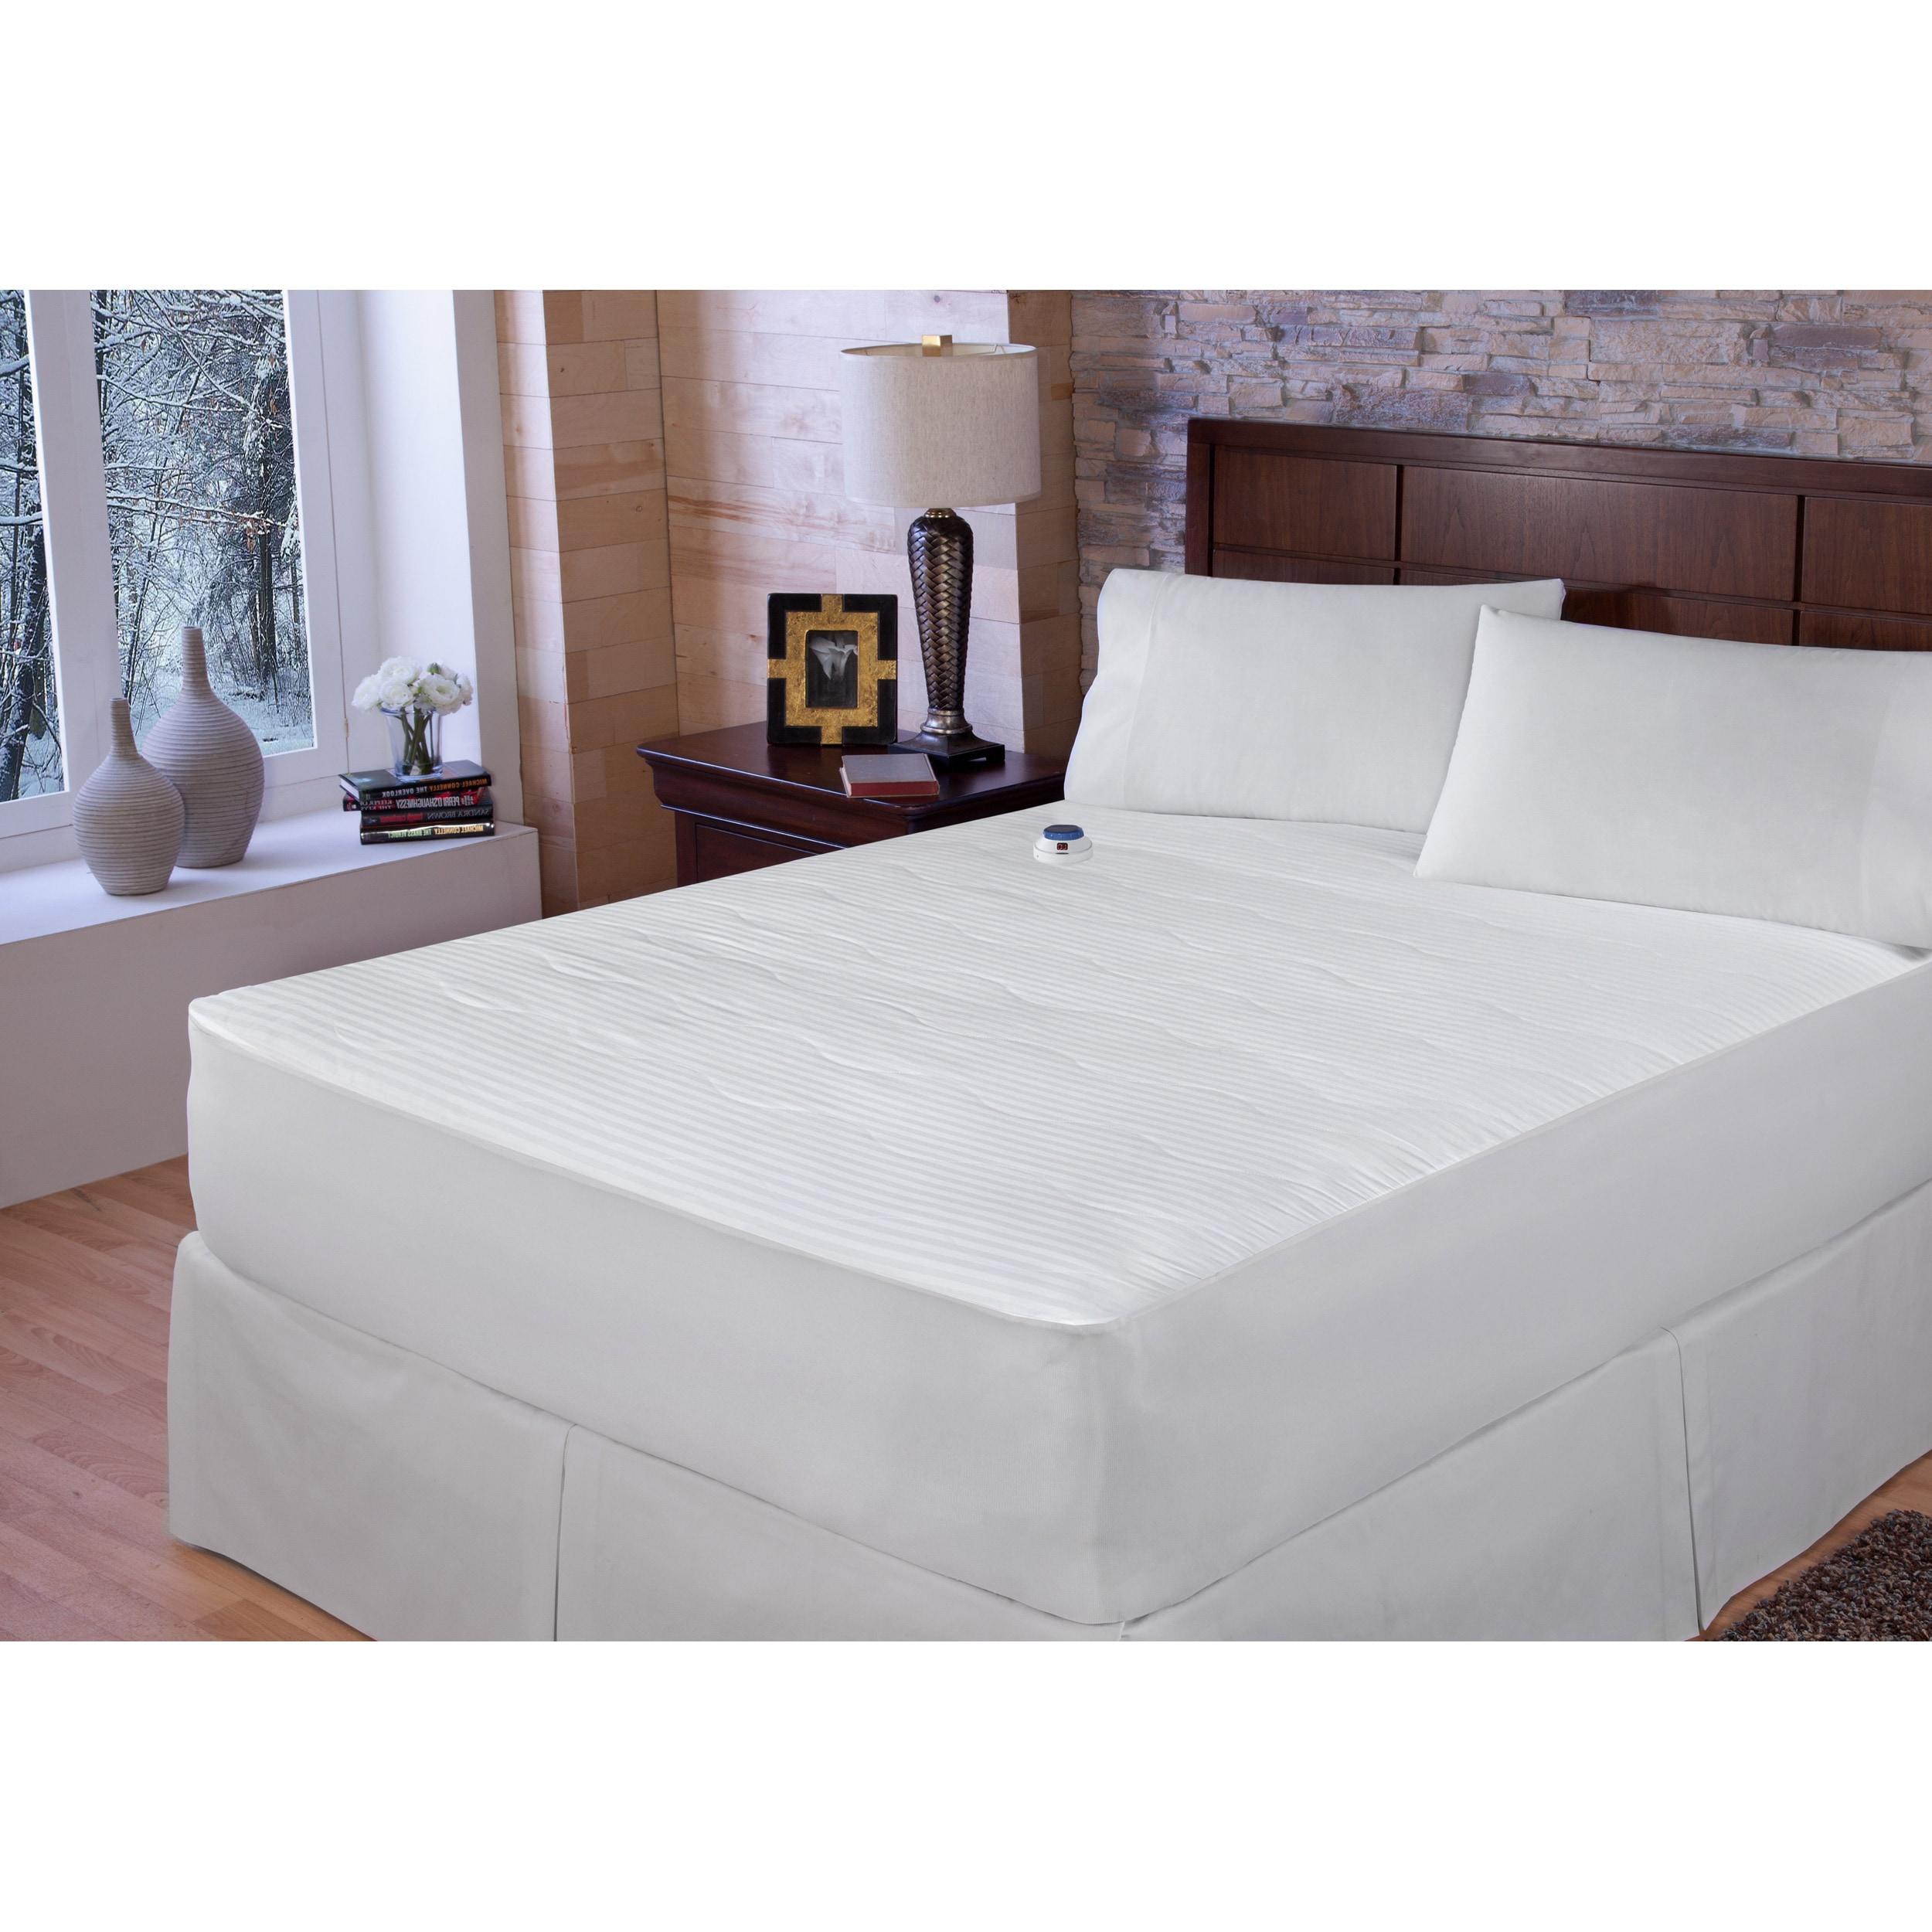 Rest Remedy Waterproof Electric Warming Mattress Pad with...